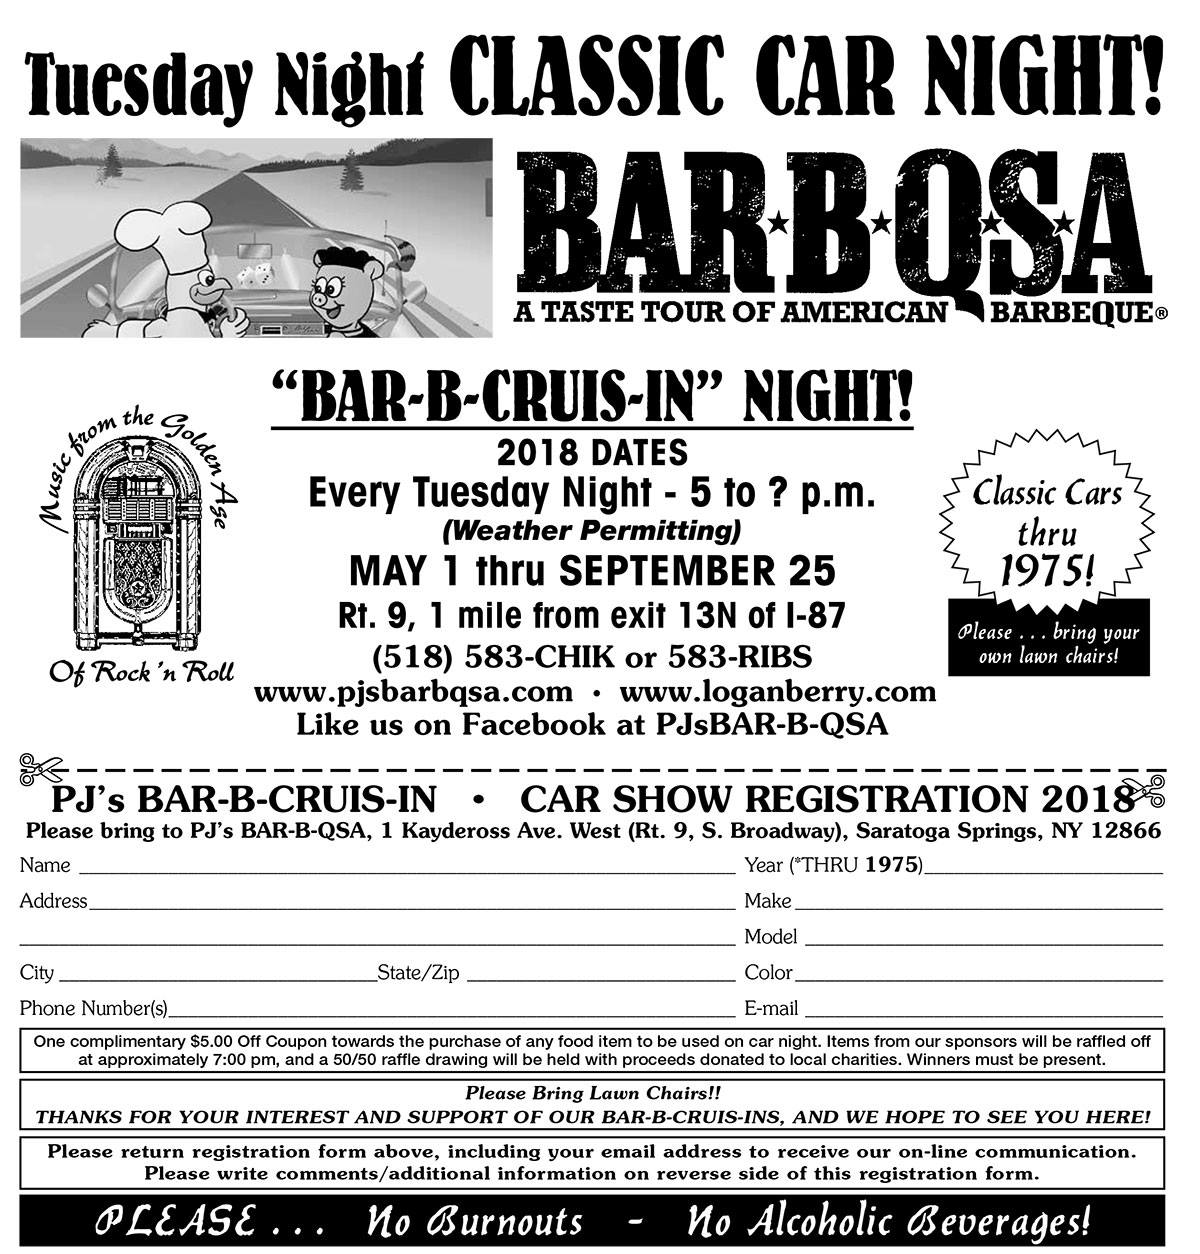 PJ's Bar-B-Cruis-In Classic Car Night 2018 @ PJ's BAR-B-QSA | Saratoga Springs | New York | United States